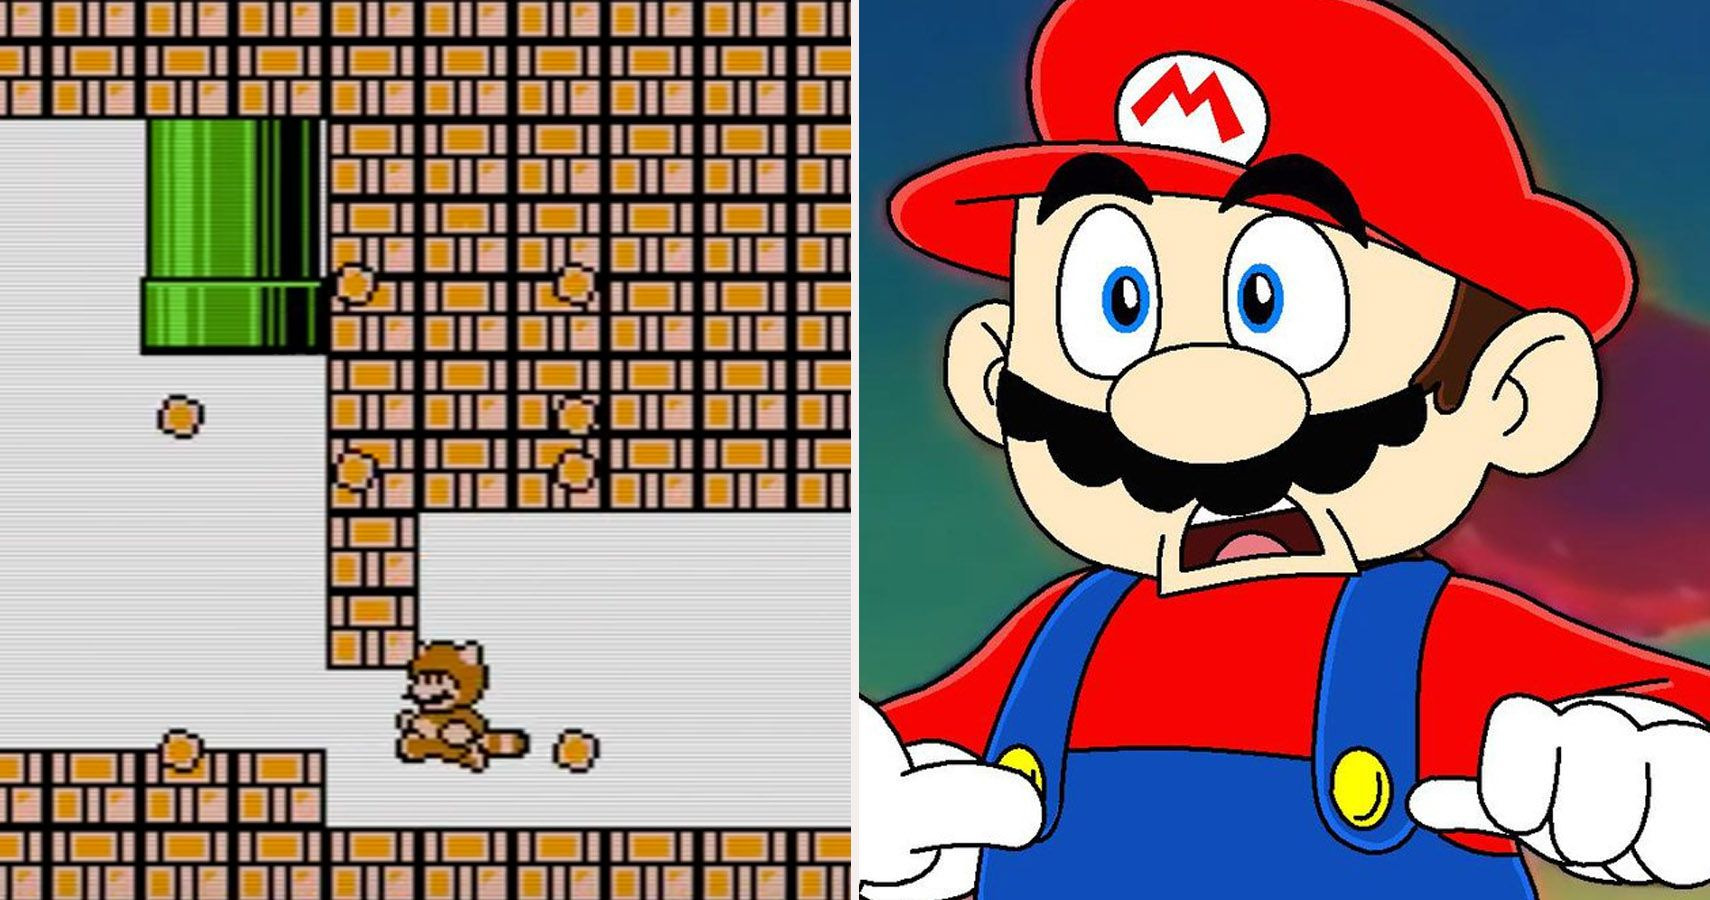 25 Hidden Things Even Super Fans Missed In Super Mario Bros 3